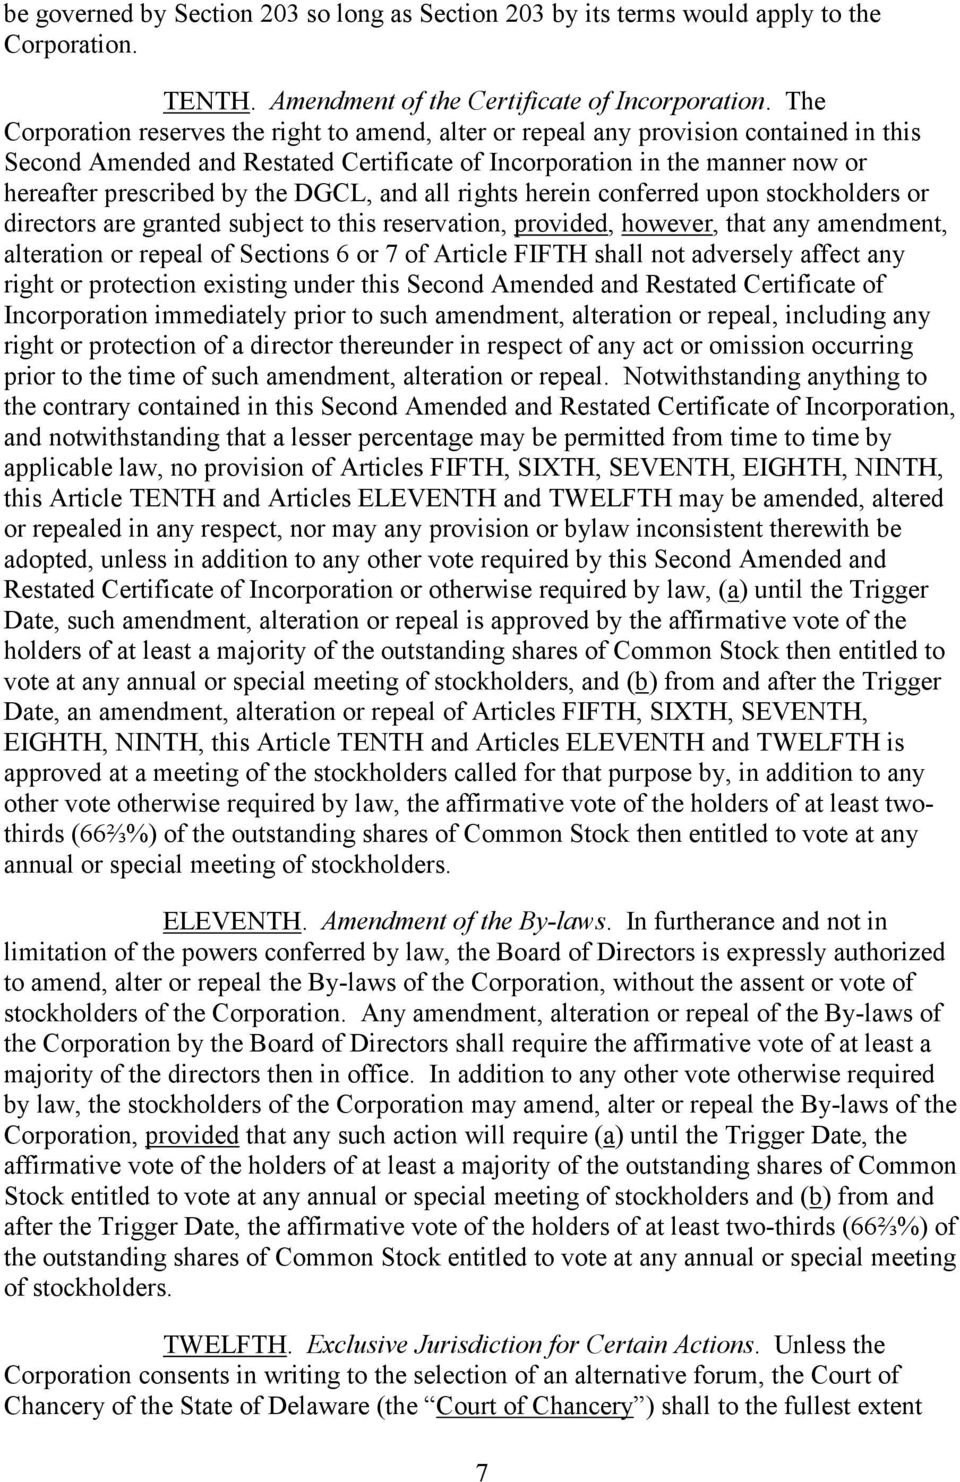 DGCL, and all rights herein conferred upon stockholders or directors are granted subject to this reservation, provided, however, that any amendment, alteration or repeal of Sections 6 or 7 of Article